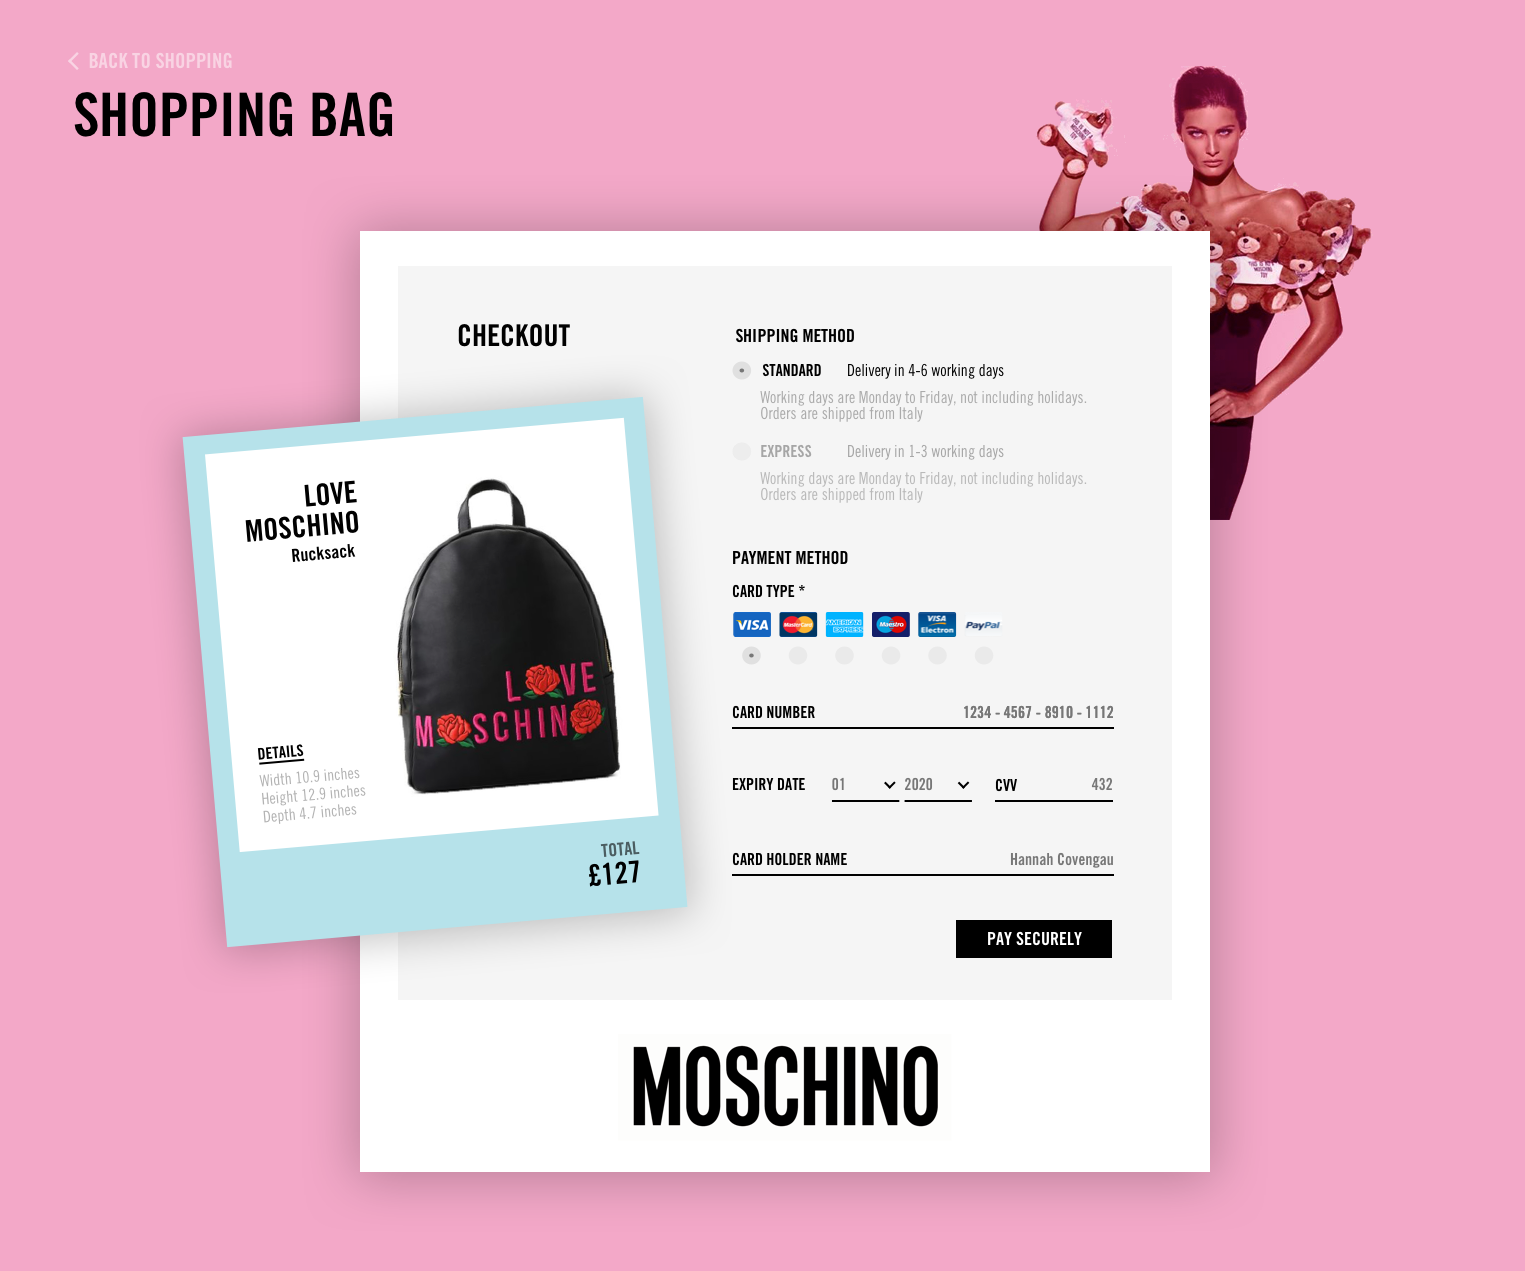 moschino pp.png